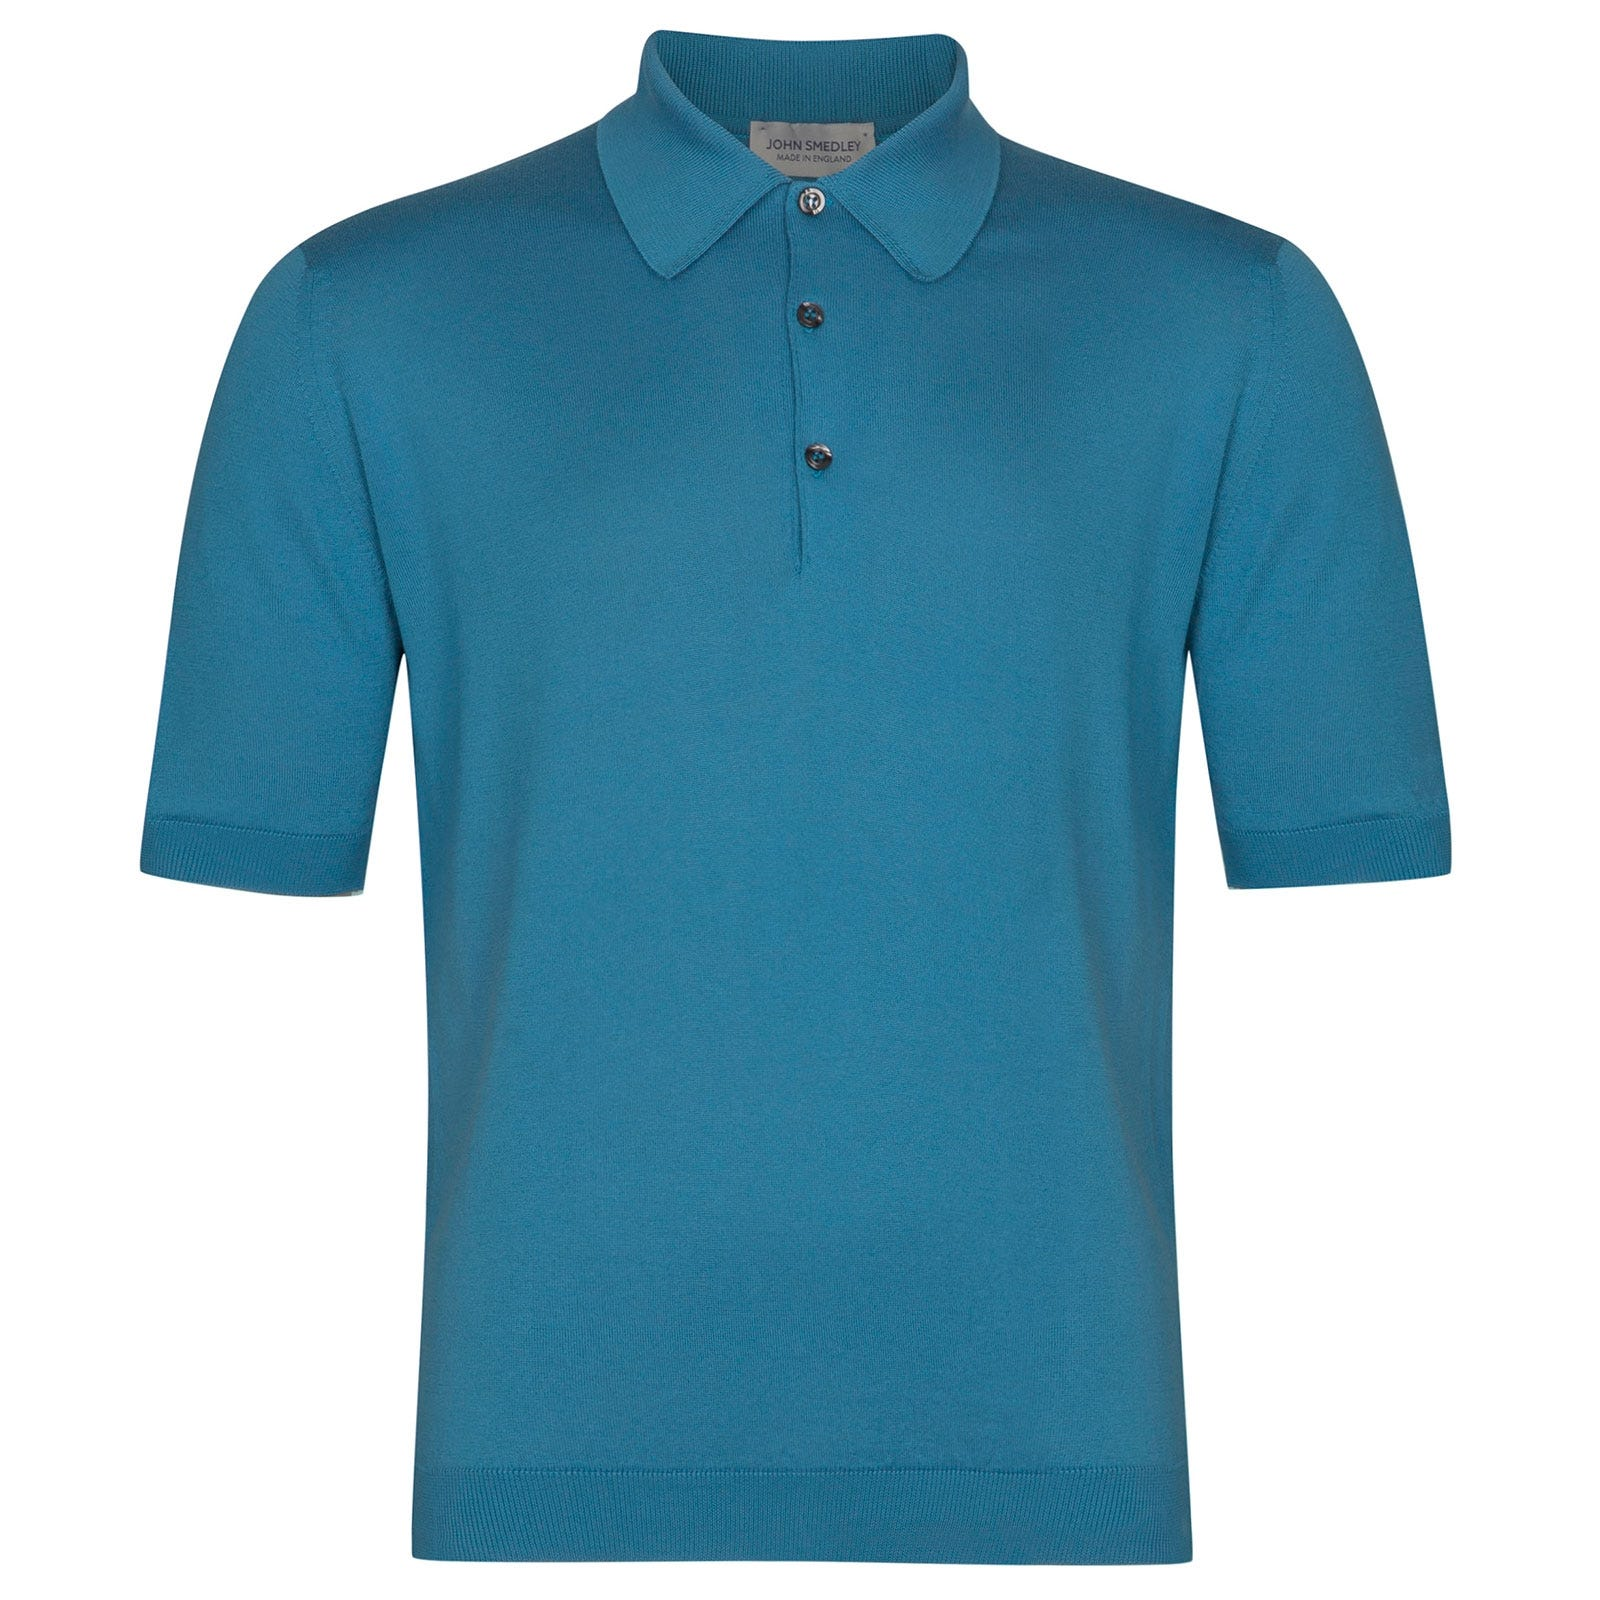 John Smedley Isis Sea Island Cotton Shirt in Ionize Blue-XS